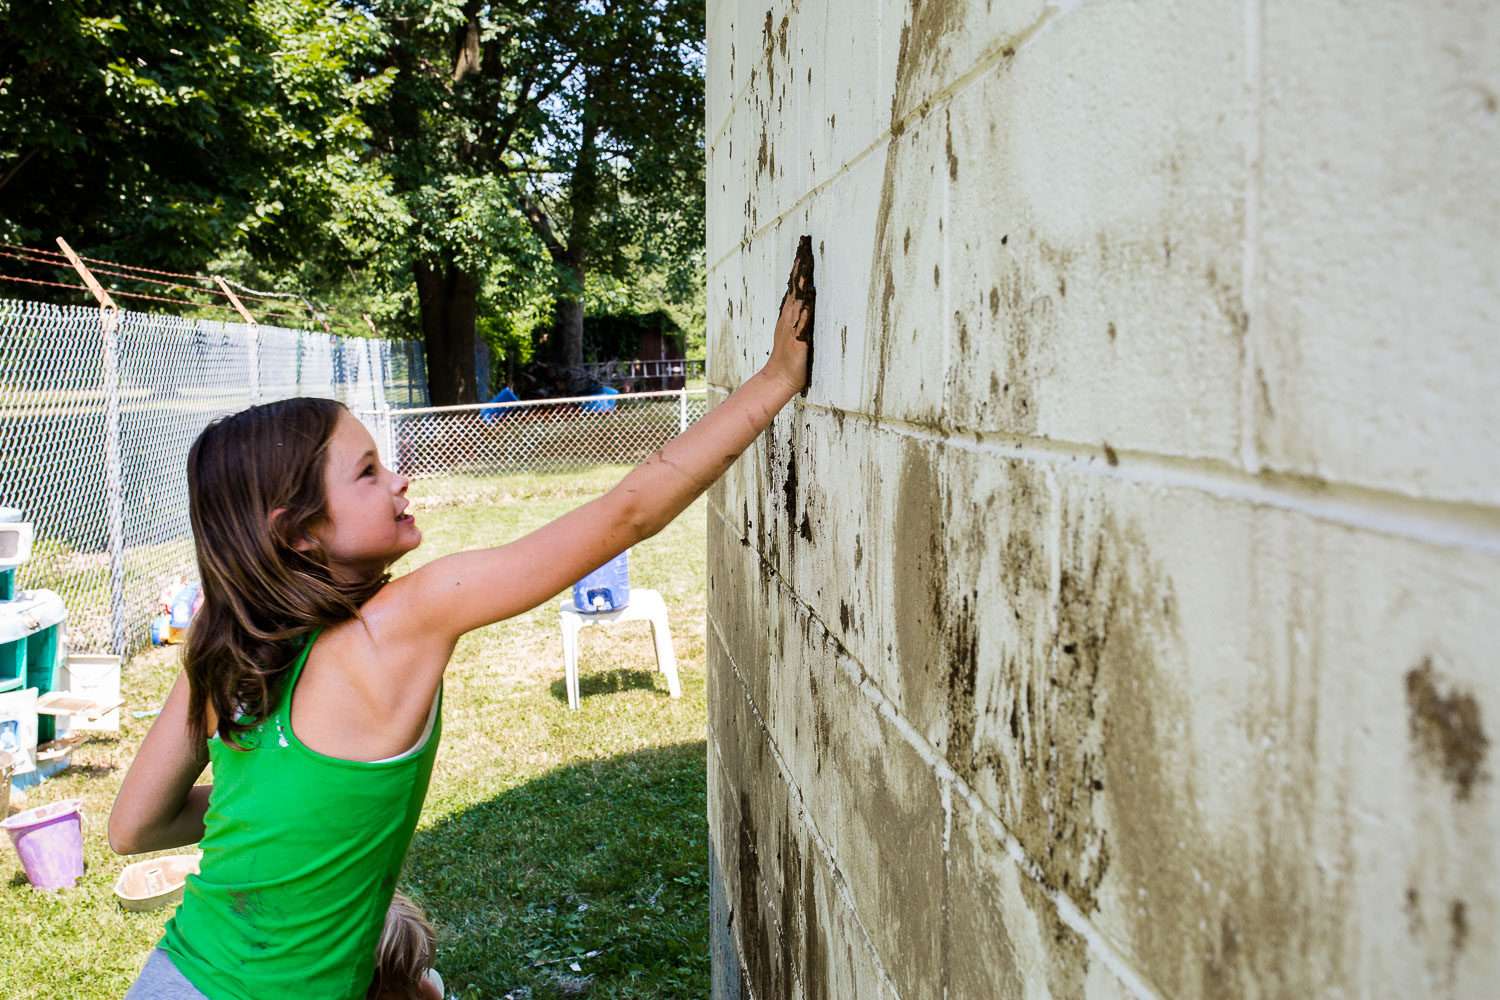 Girl making mud handprint on garage wall in backyard.